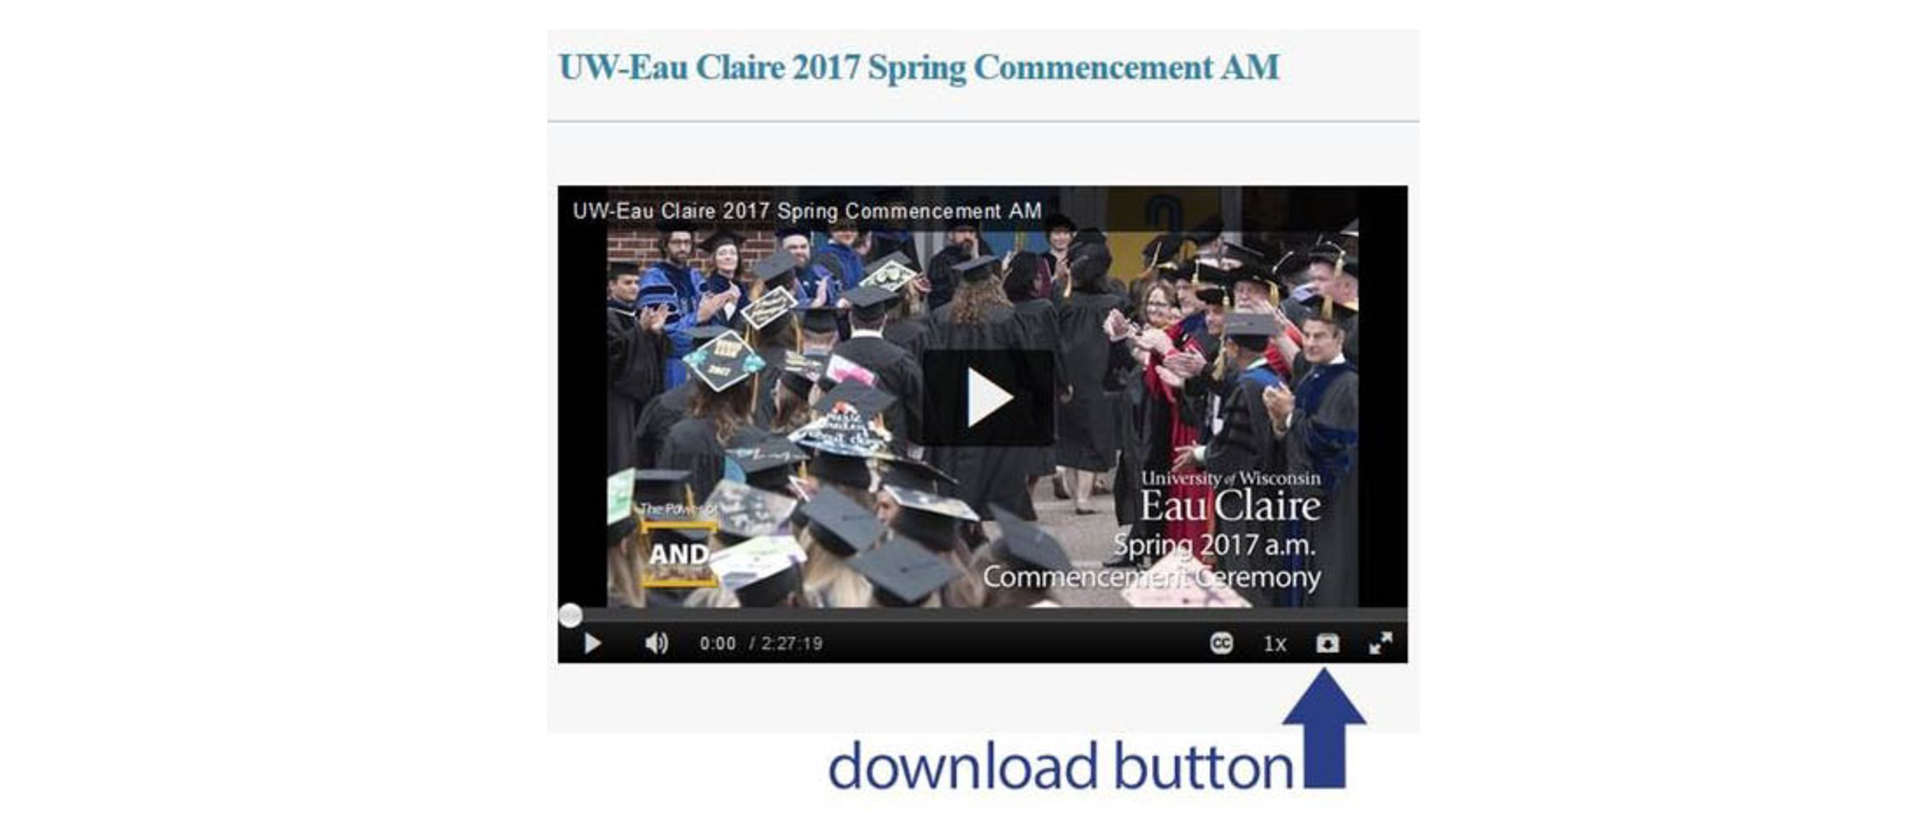 How to download previous commencements